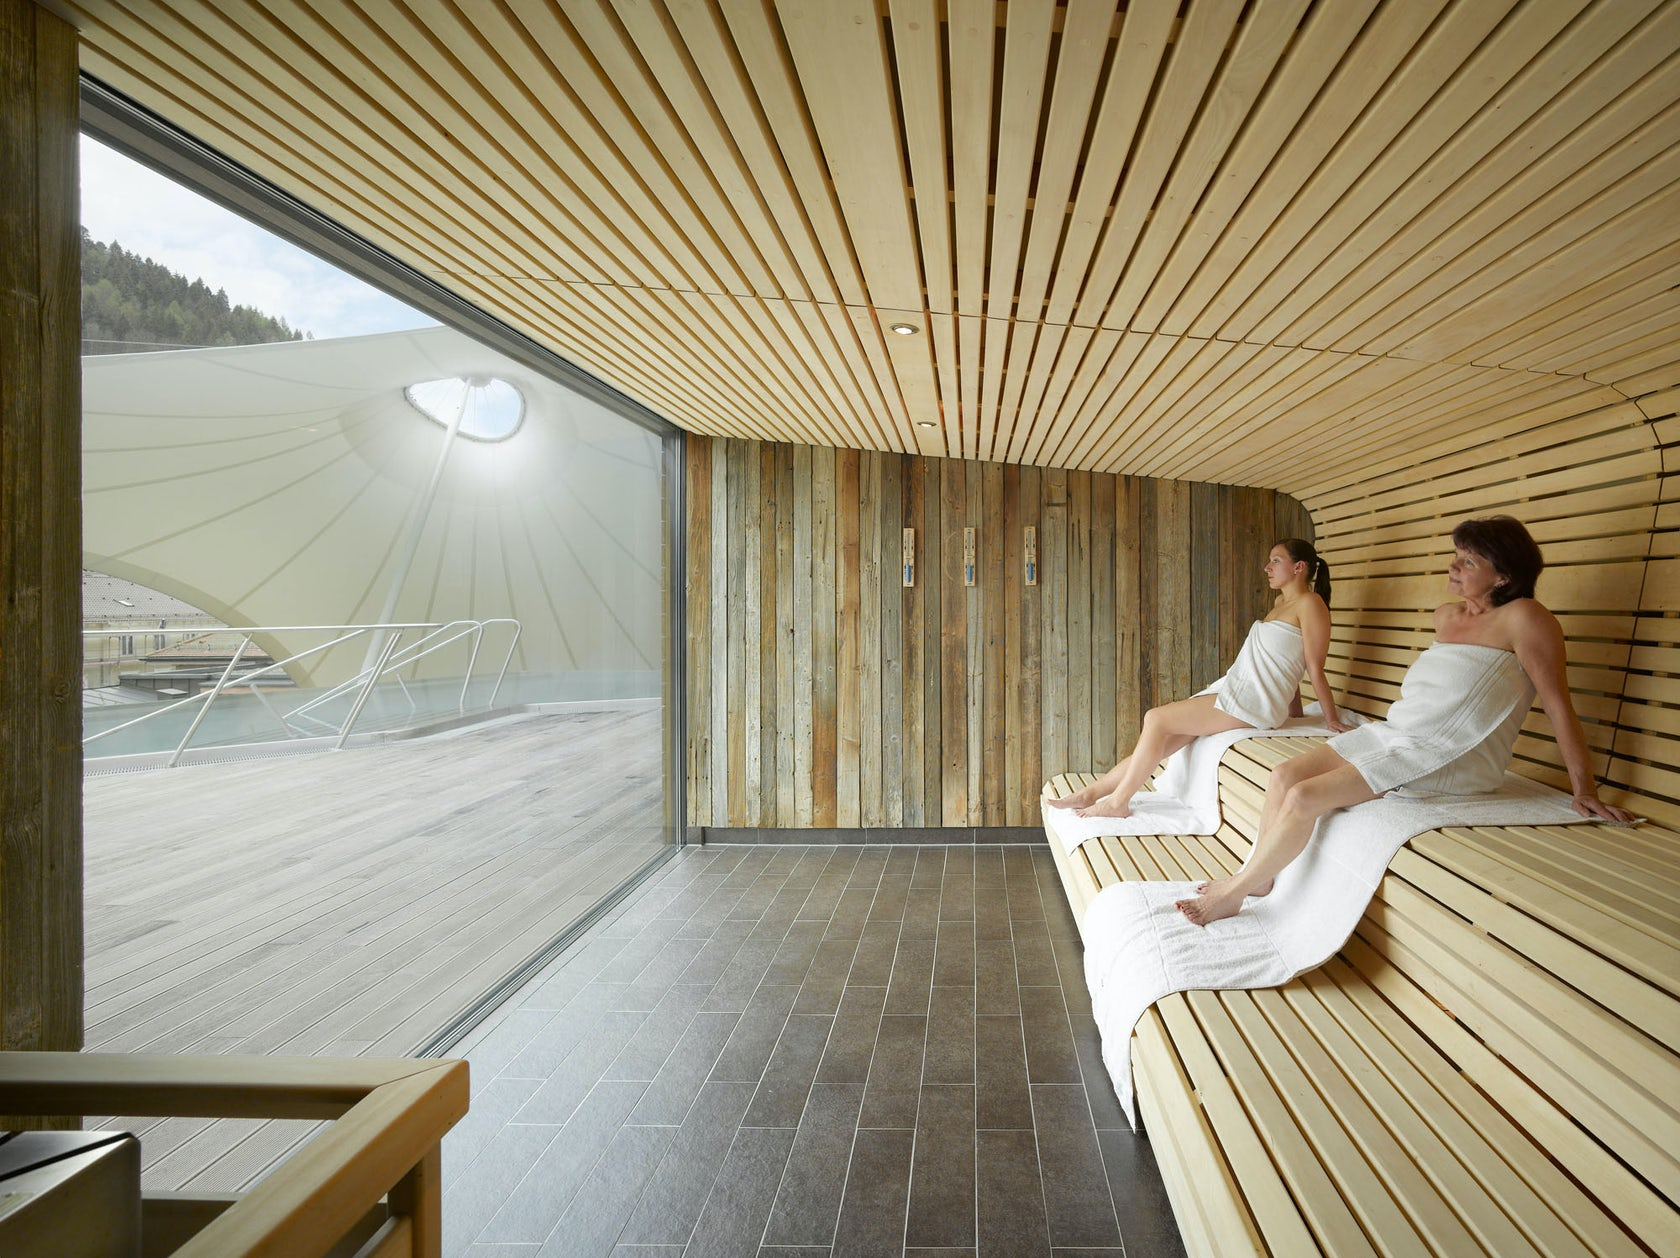 Spa and outdoor area 39 palais thermal 39 architizer for Designhotel wellness